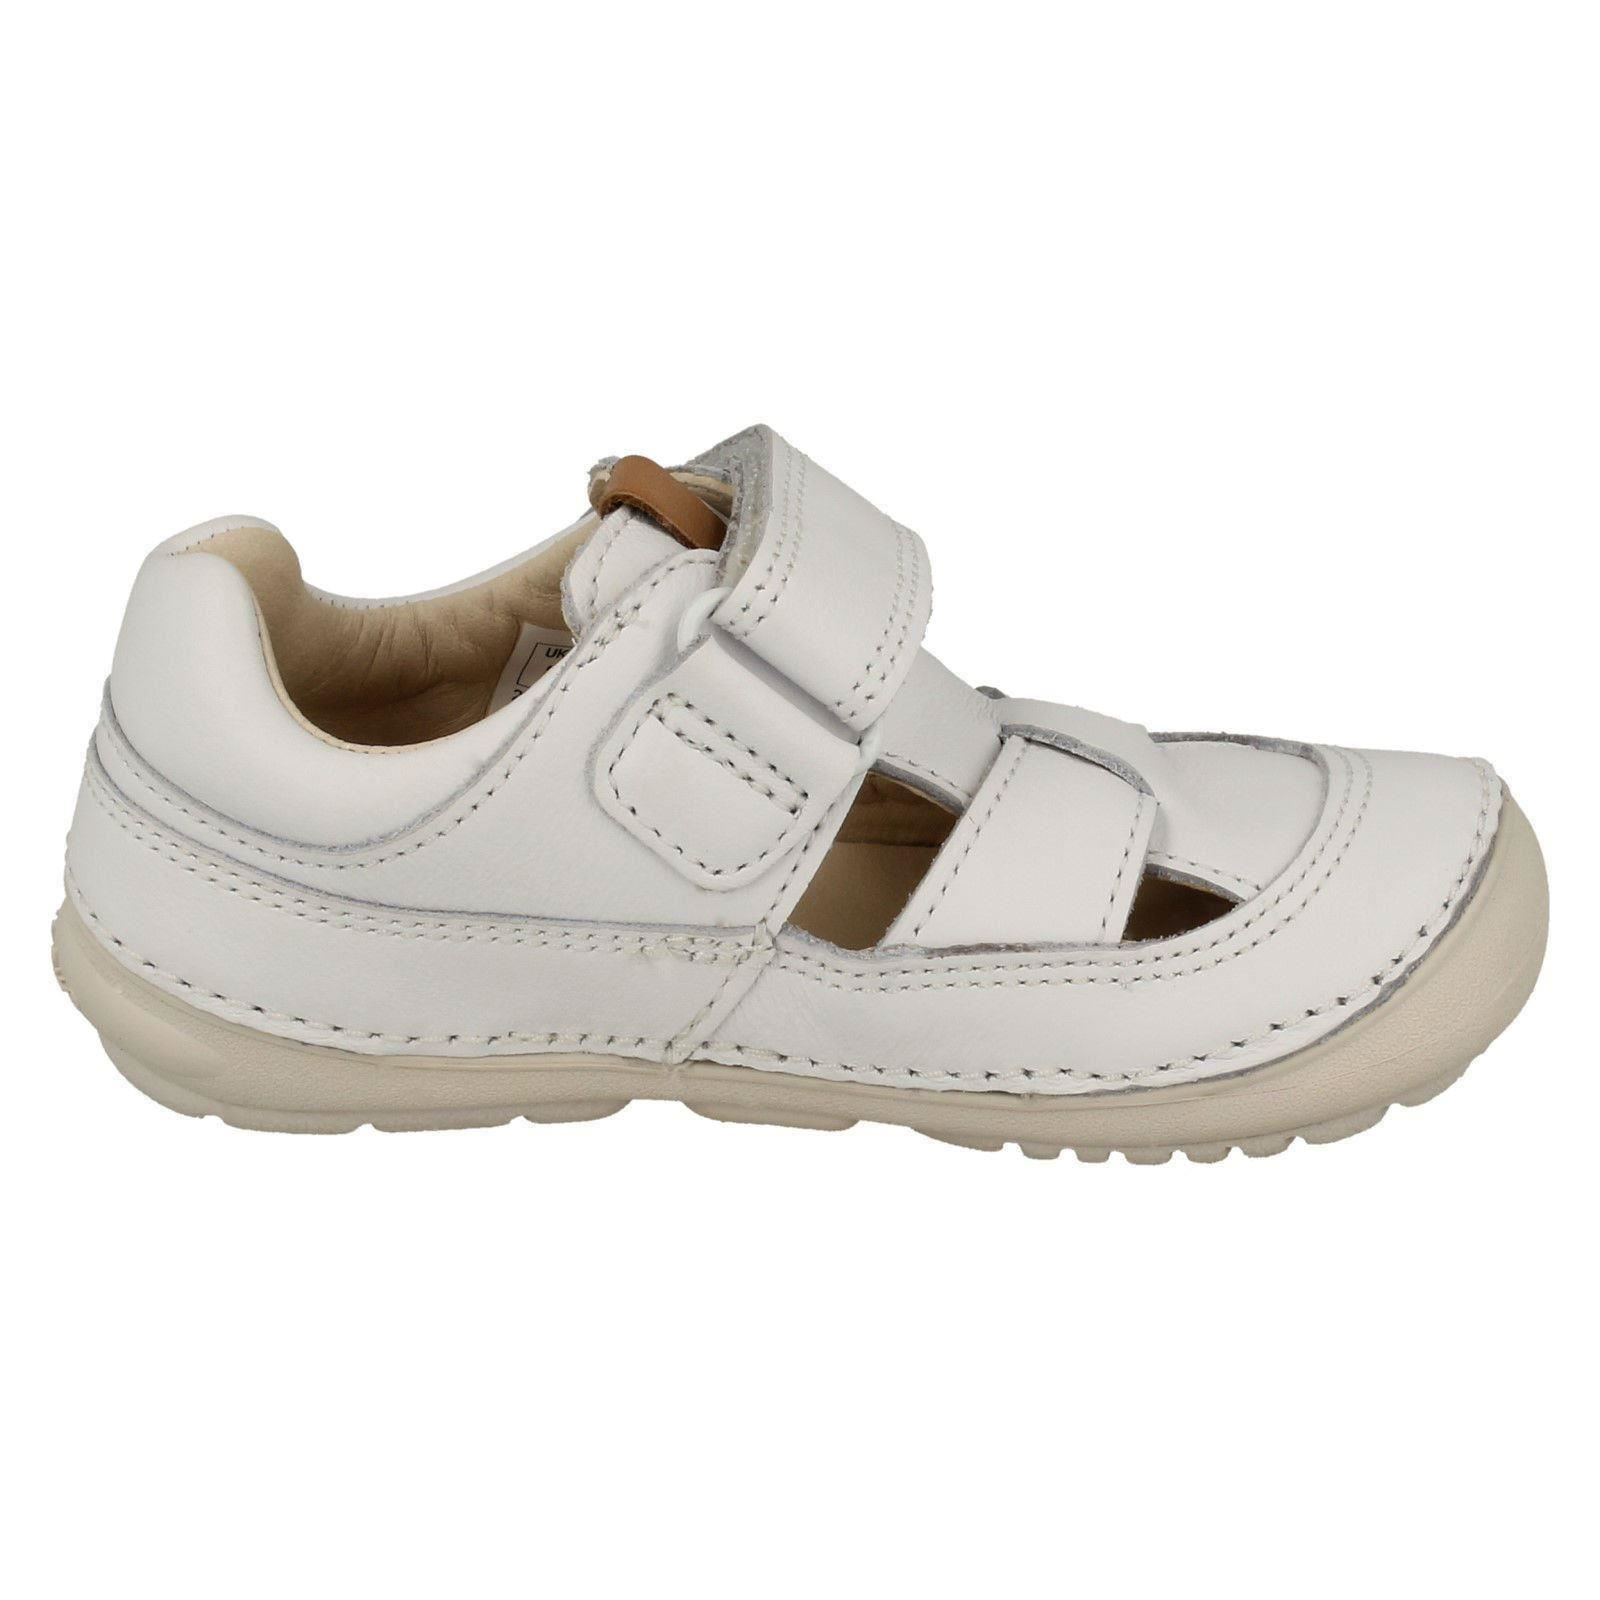 /'Softly Meadow/' Toddler Infant Girls Clarks Casual Leather Sandals Shoes